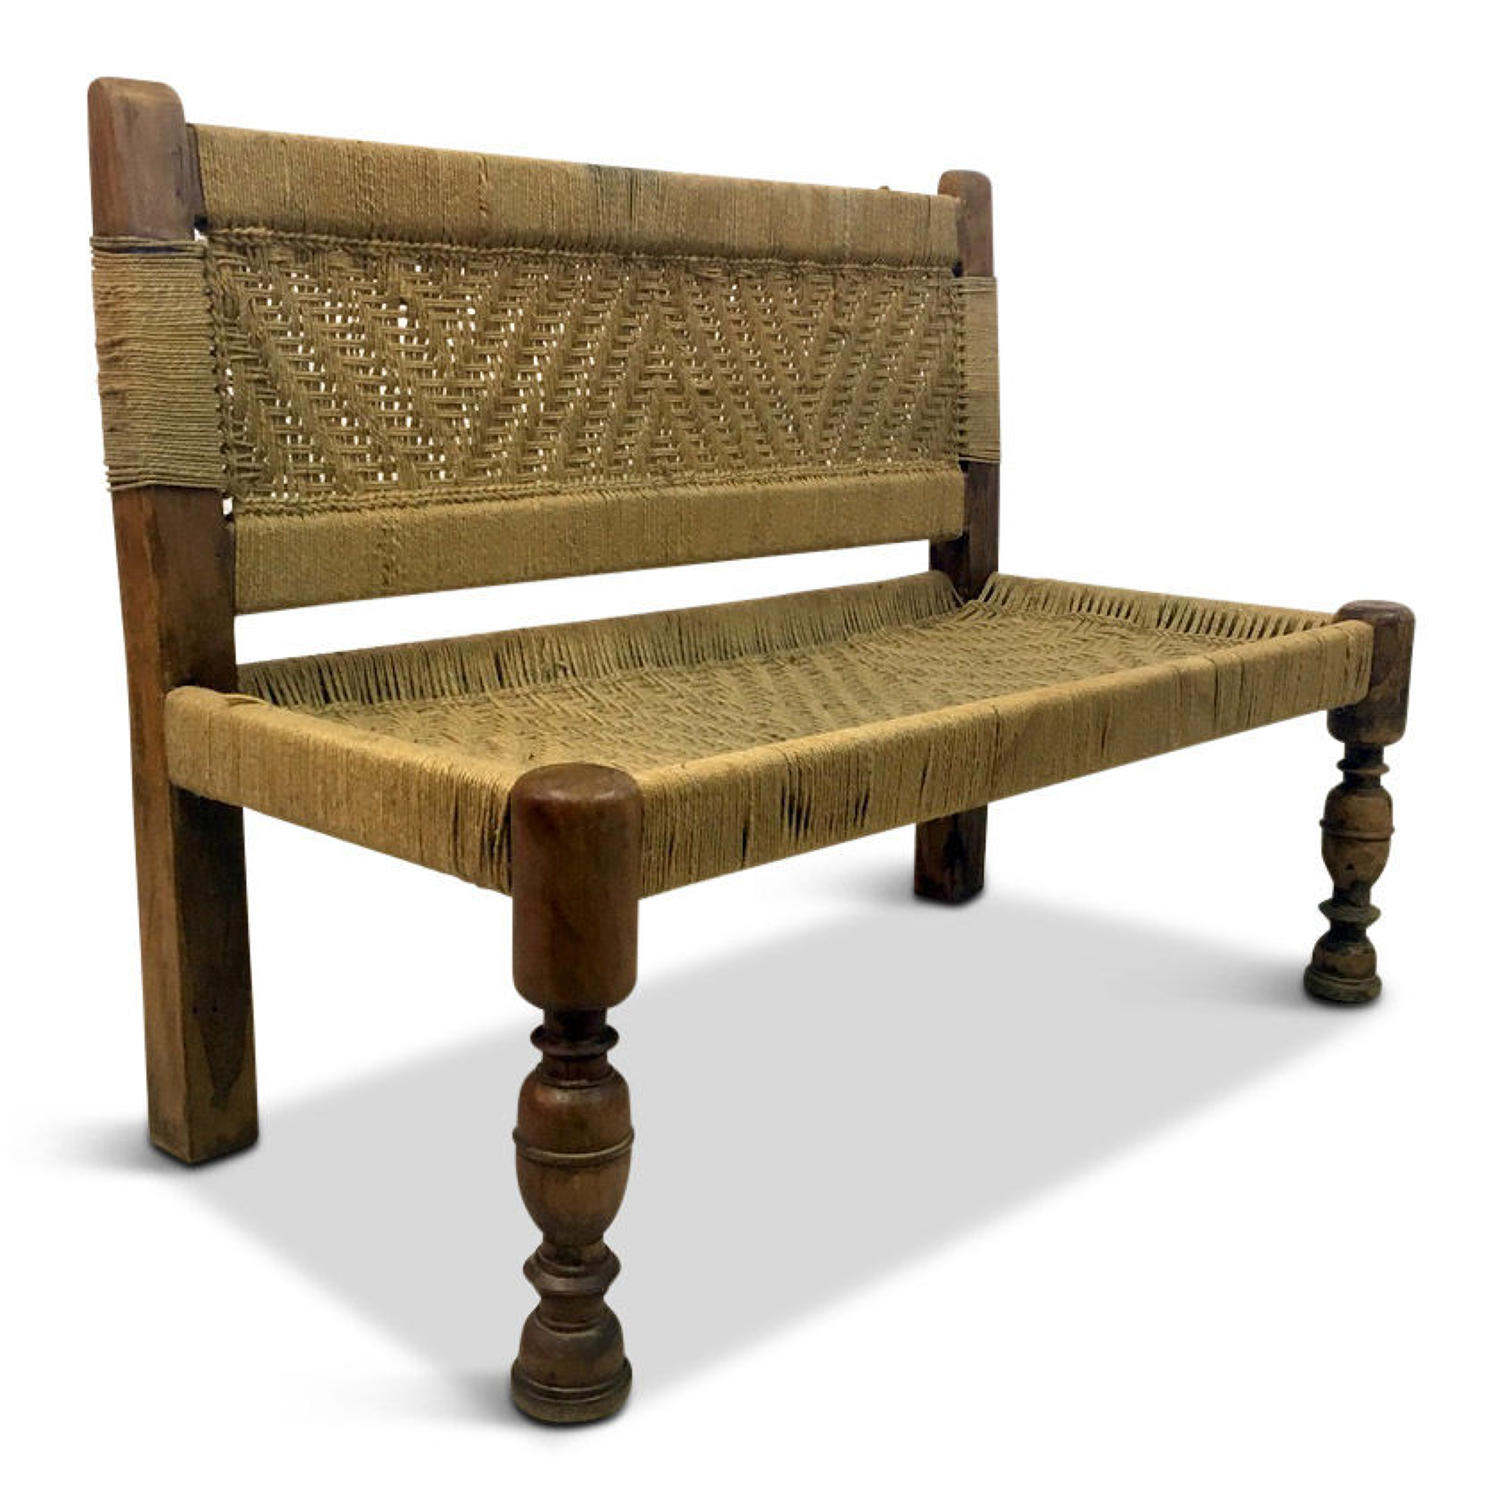 Woven rope bench in the style of Audoux and Minet